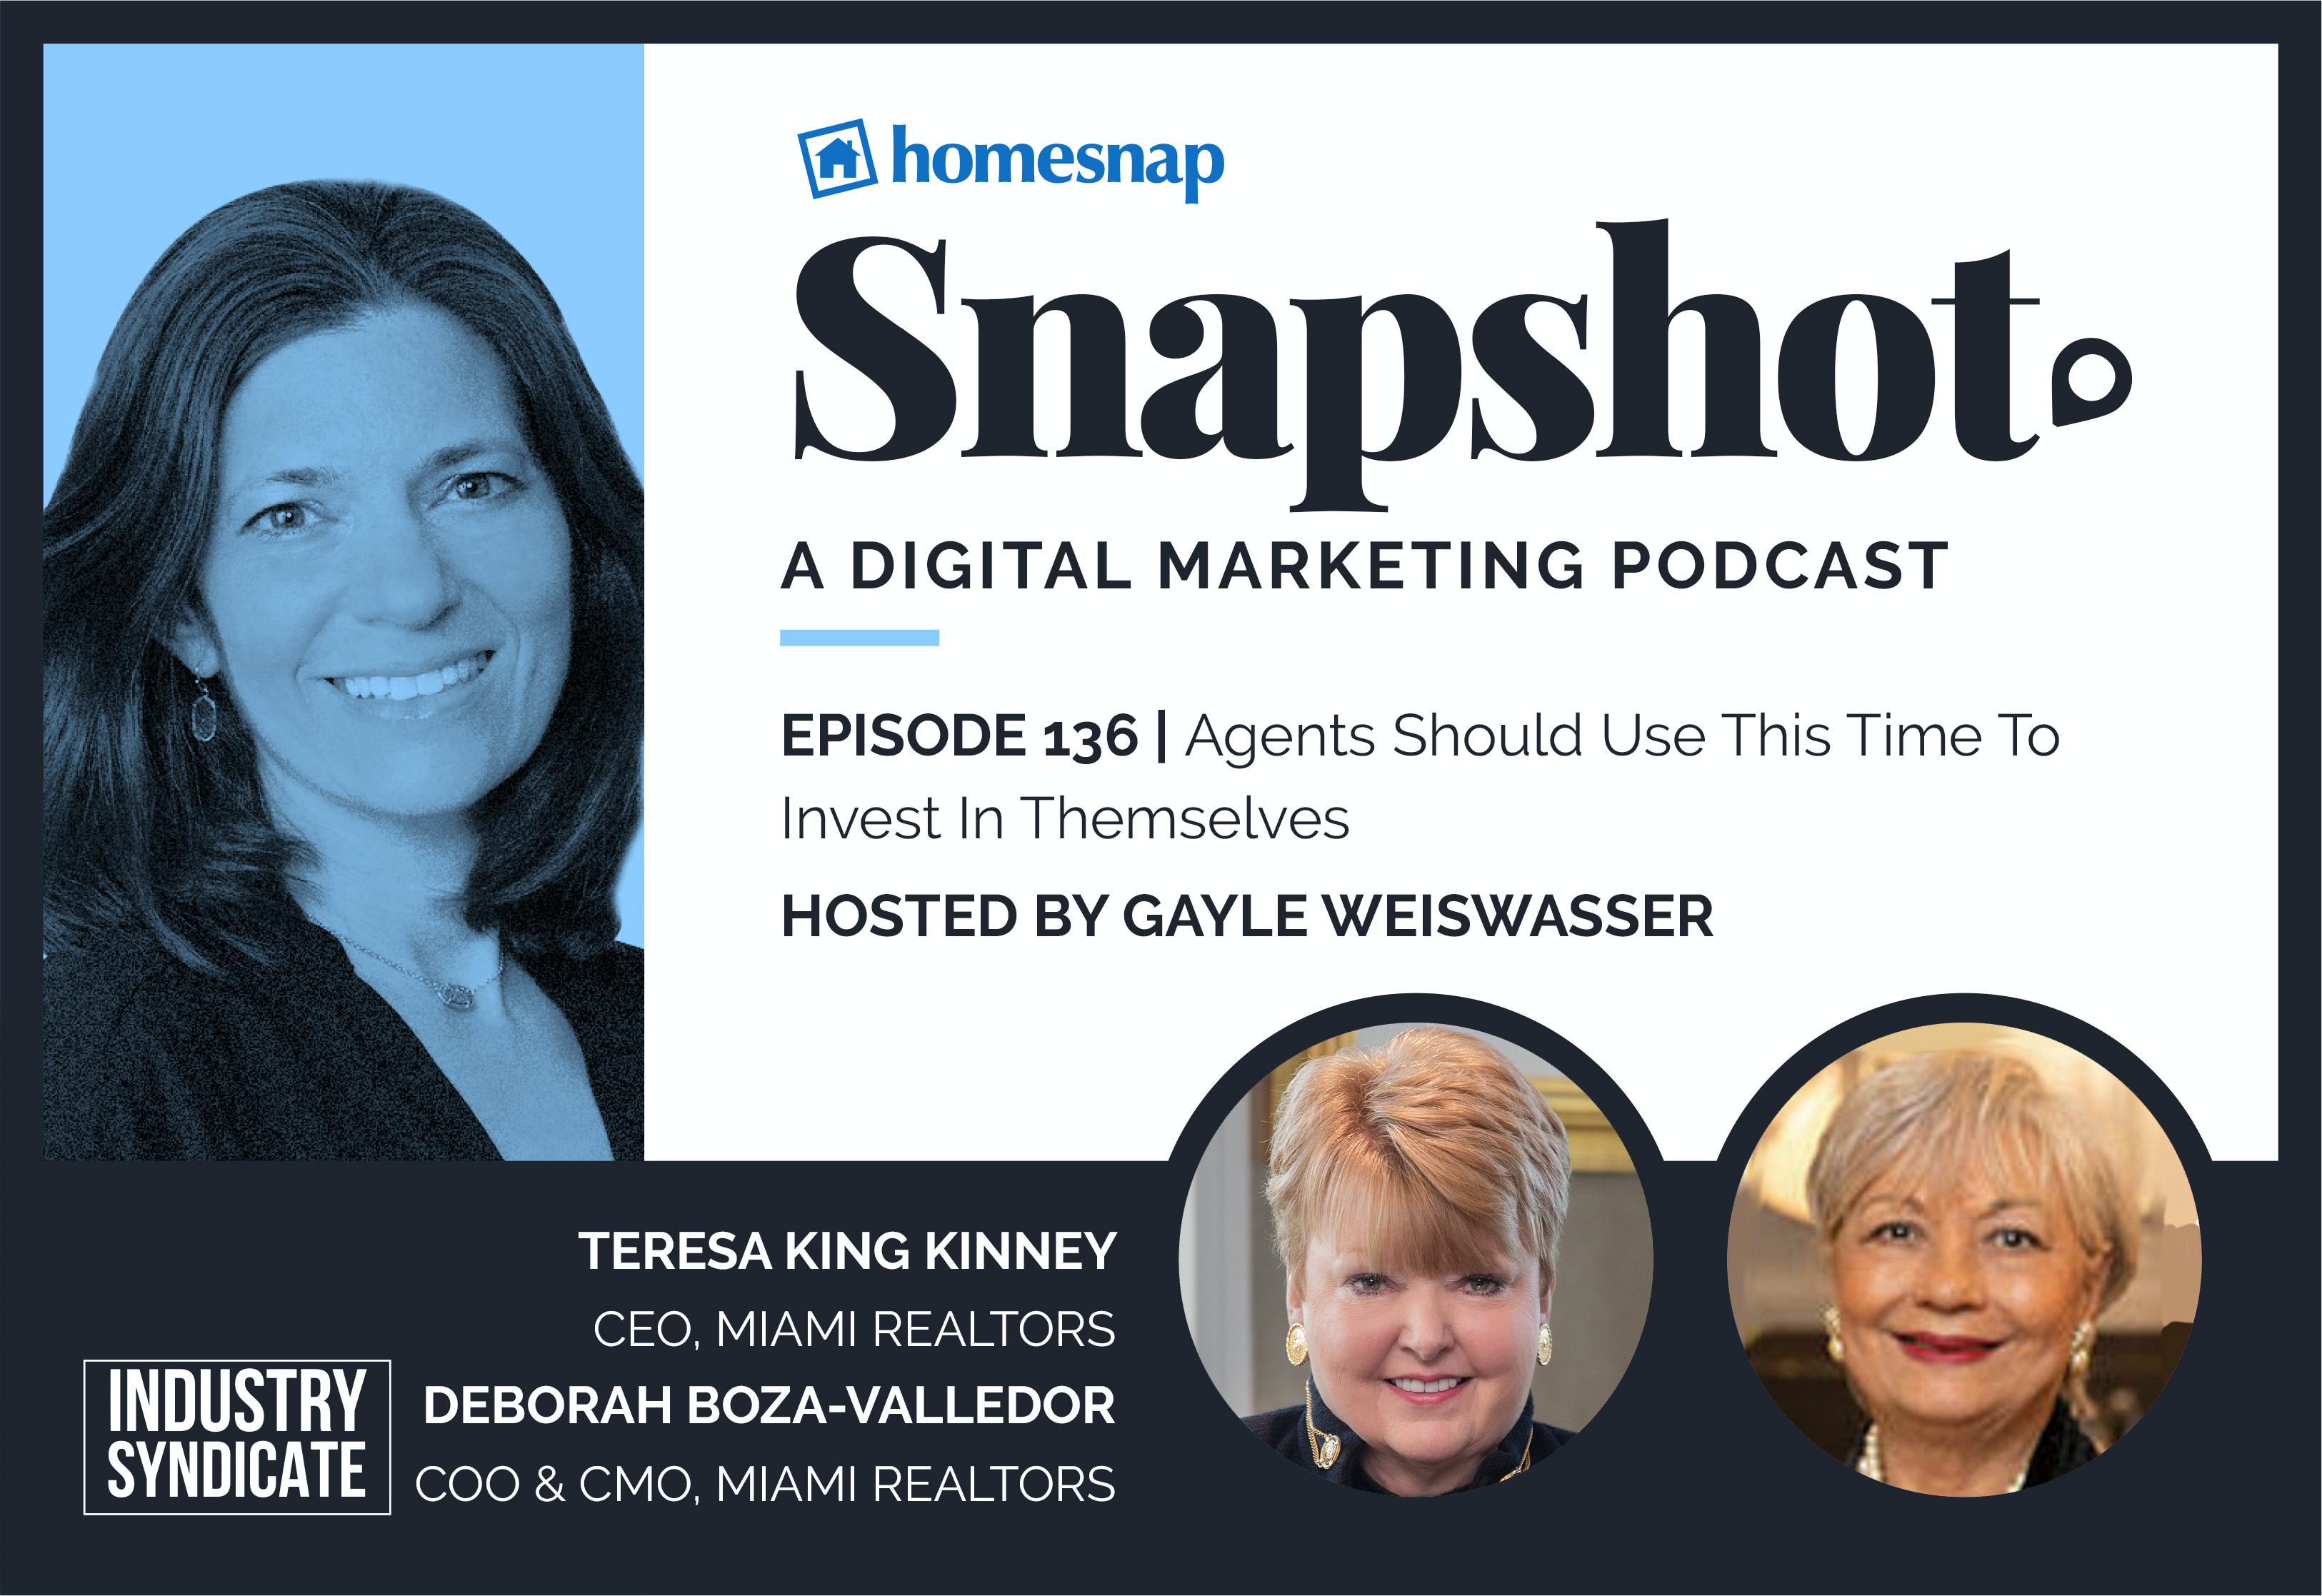 Snapshot Podcast Digital Marketing by Homesnap